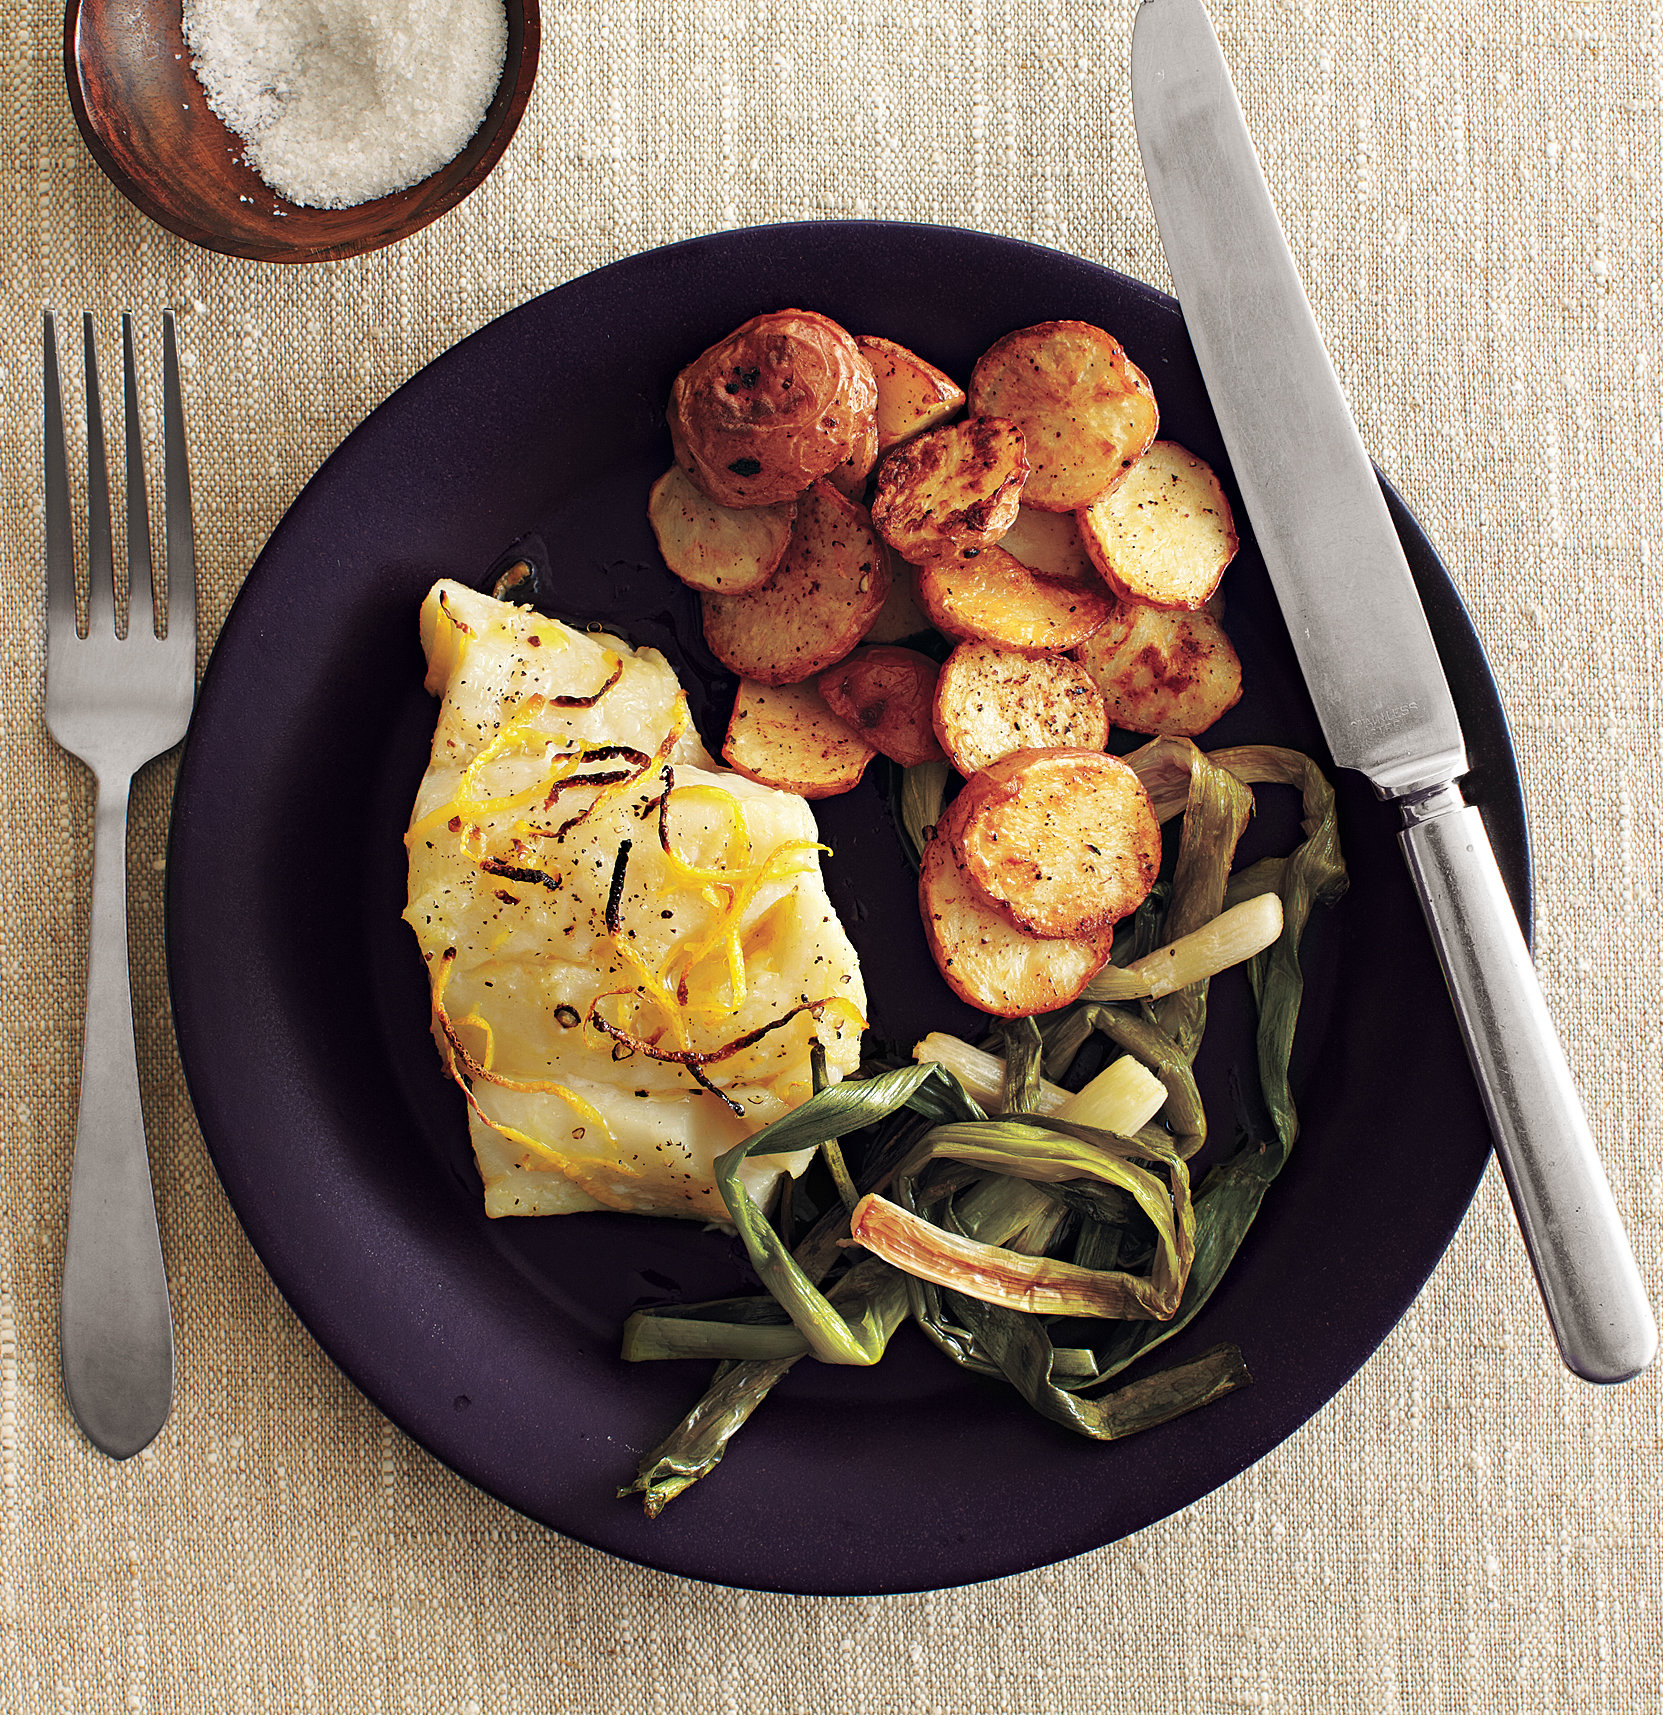 Easy Dinner Ideas: Roasted Cod and Scallions With Spiced Potatoes